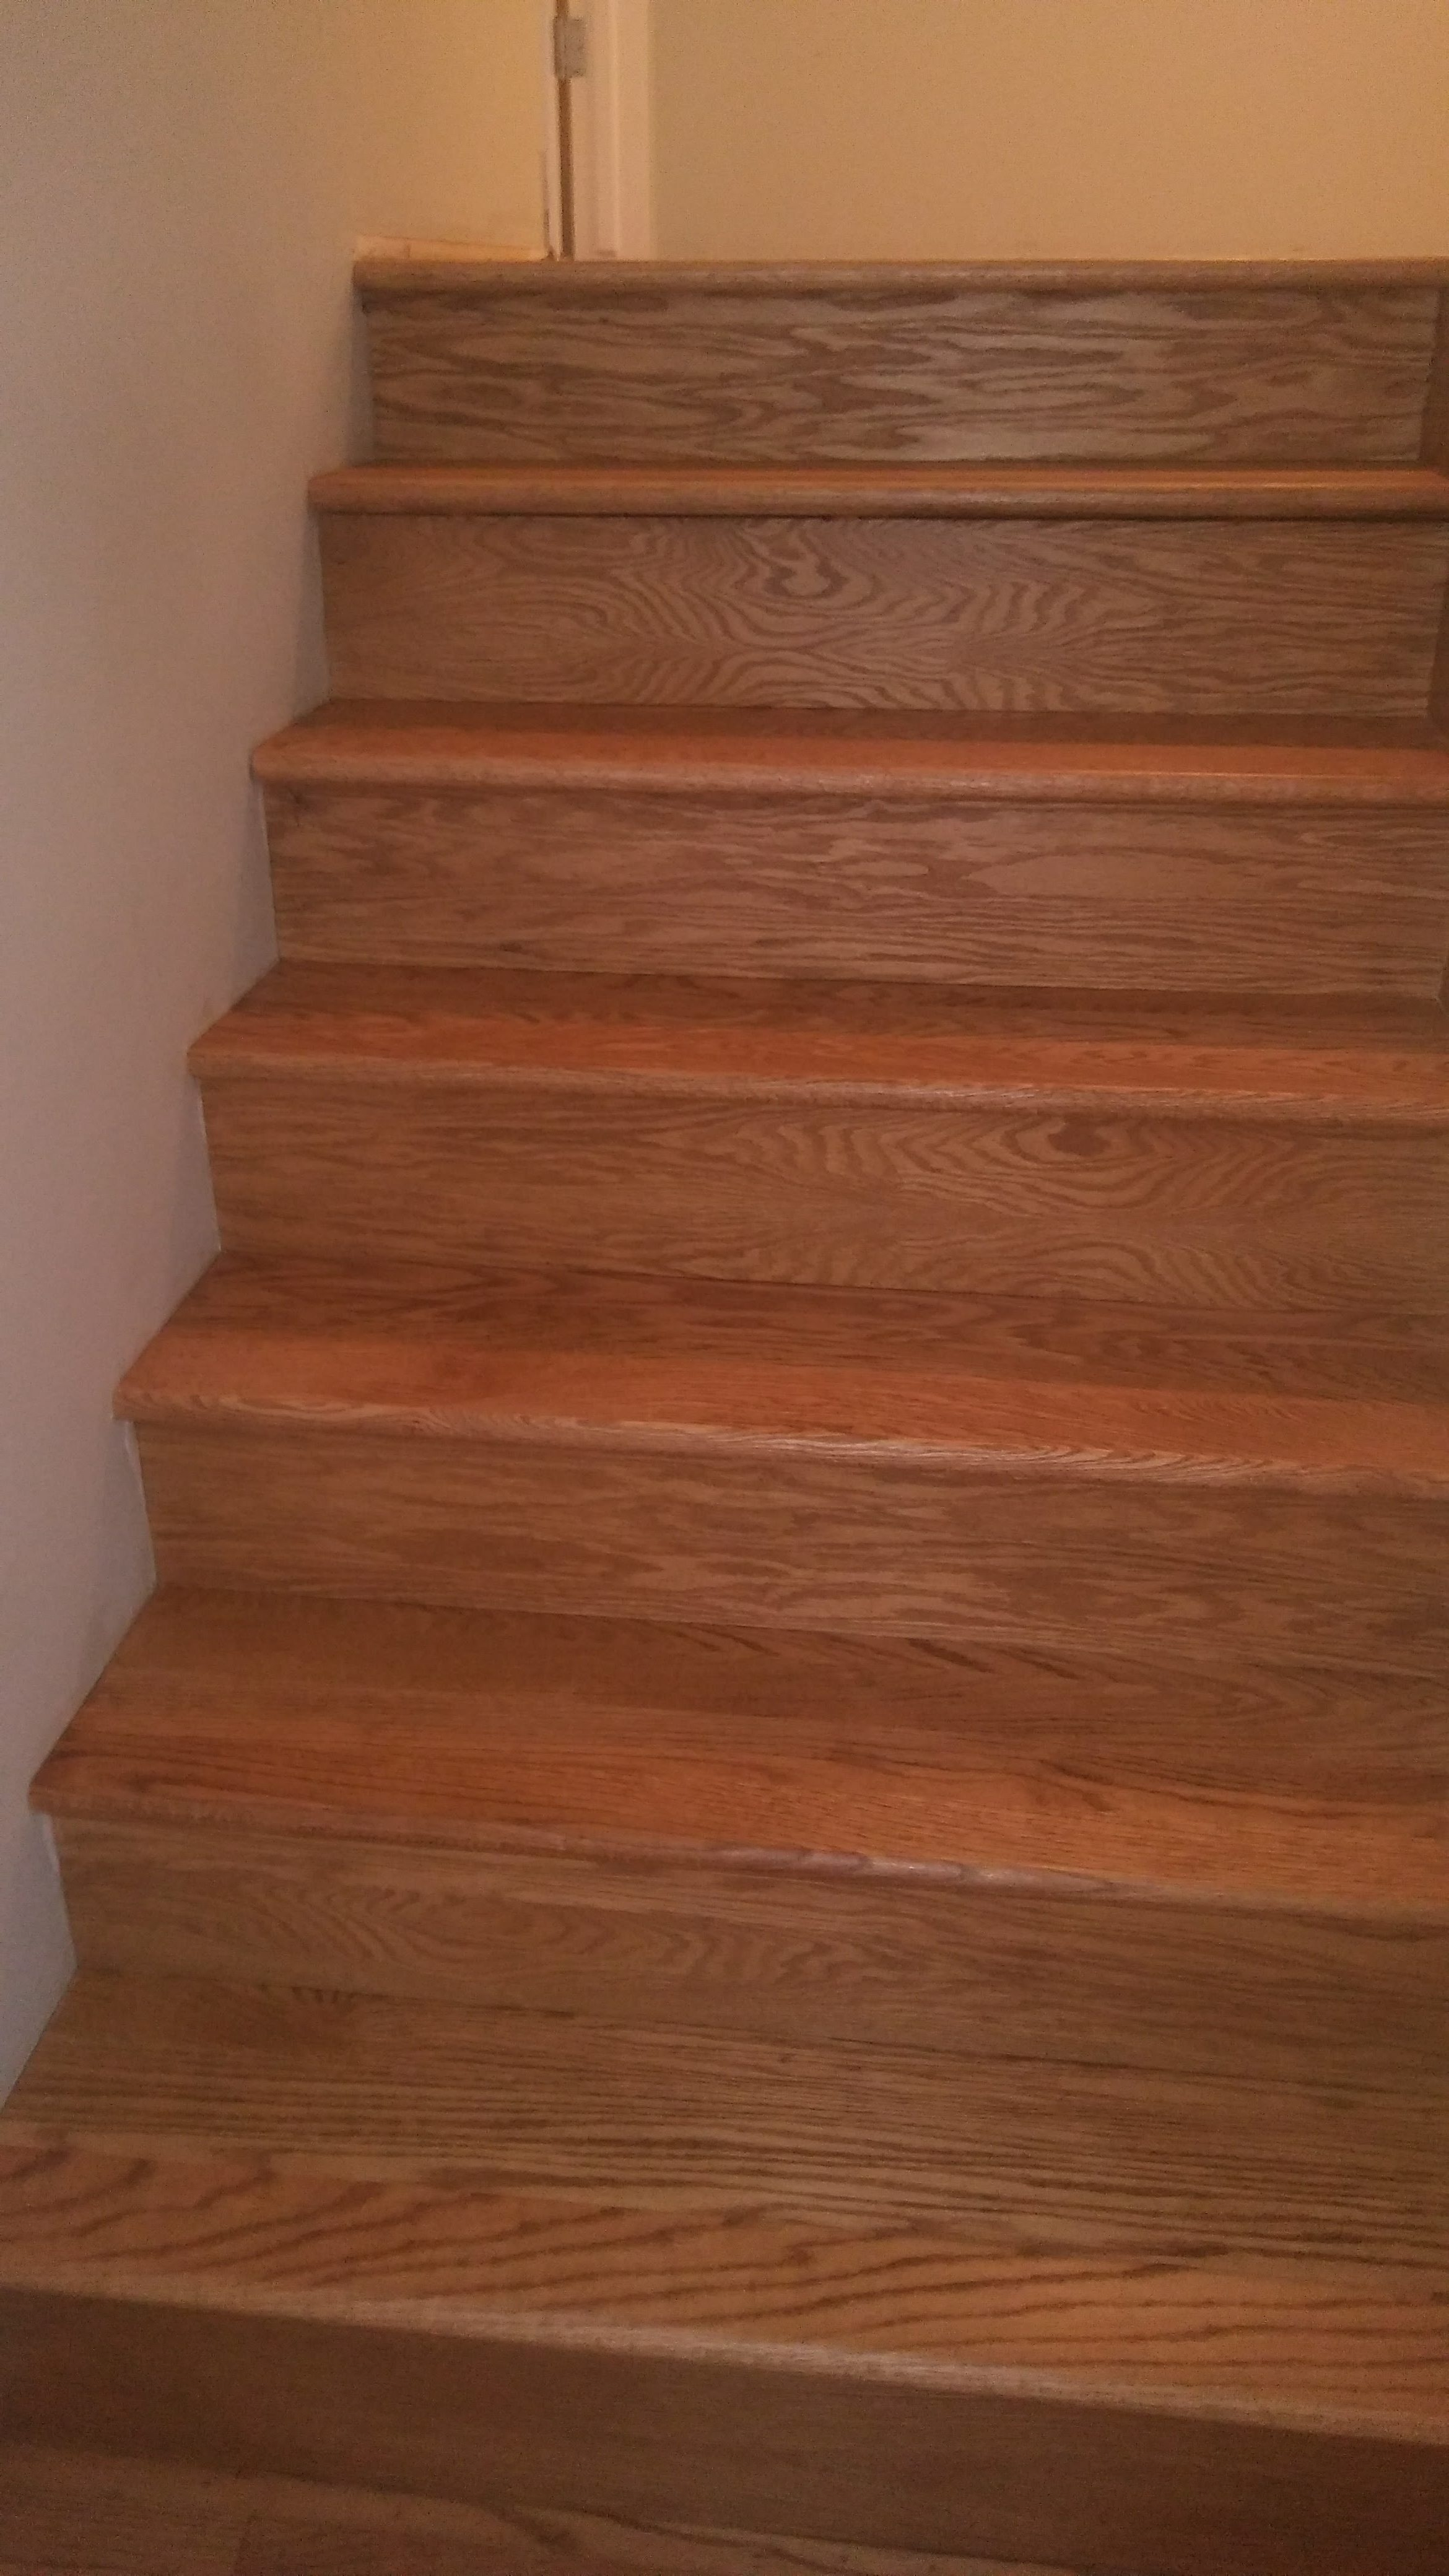 New Treads And Risers Golden Oak Stain On Red Oak – Hardwood Floor   Red Oak Stair Risers   Stair Tread   Stair Parts   Flooring   Stain   Modern Retro